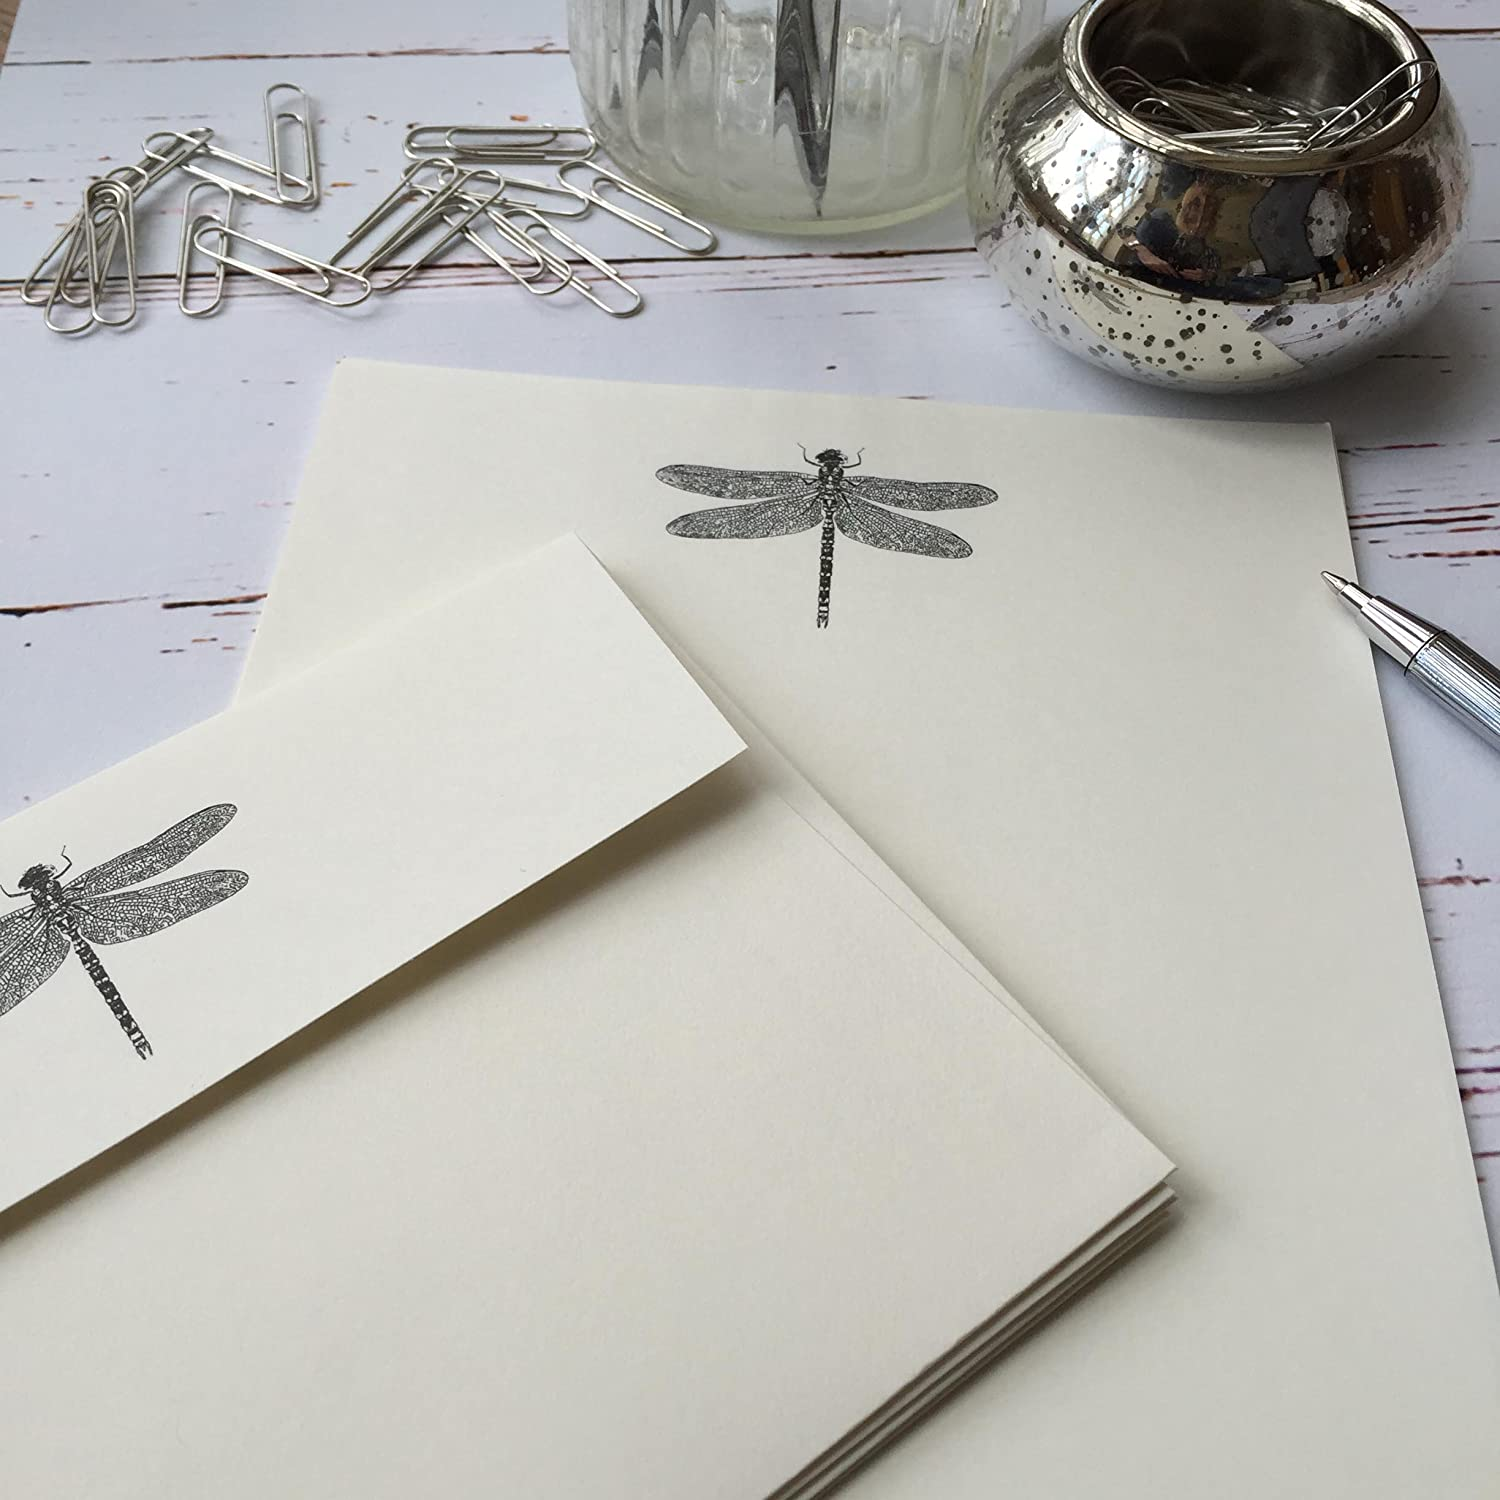 Writing Paper Gift Set With Dragonfly design from Wagtail Designs in a lovely Black Box with Ribbon (18)